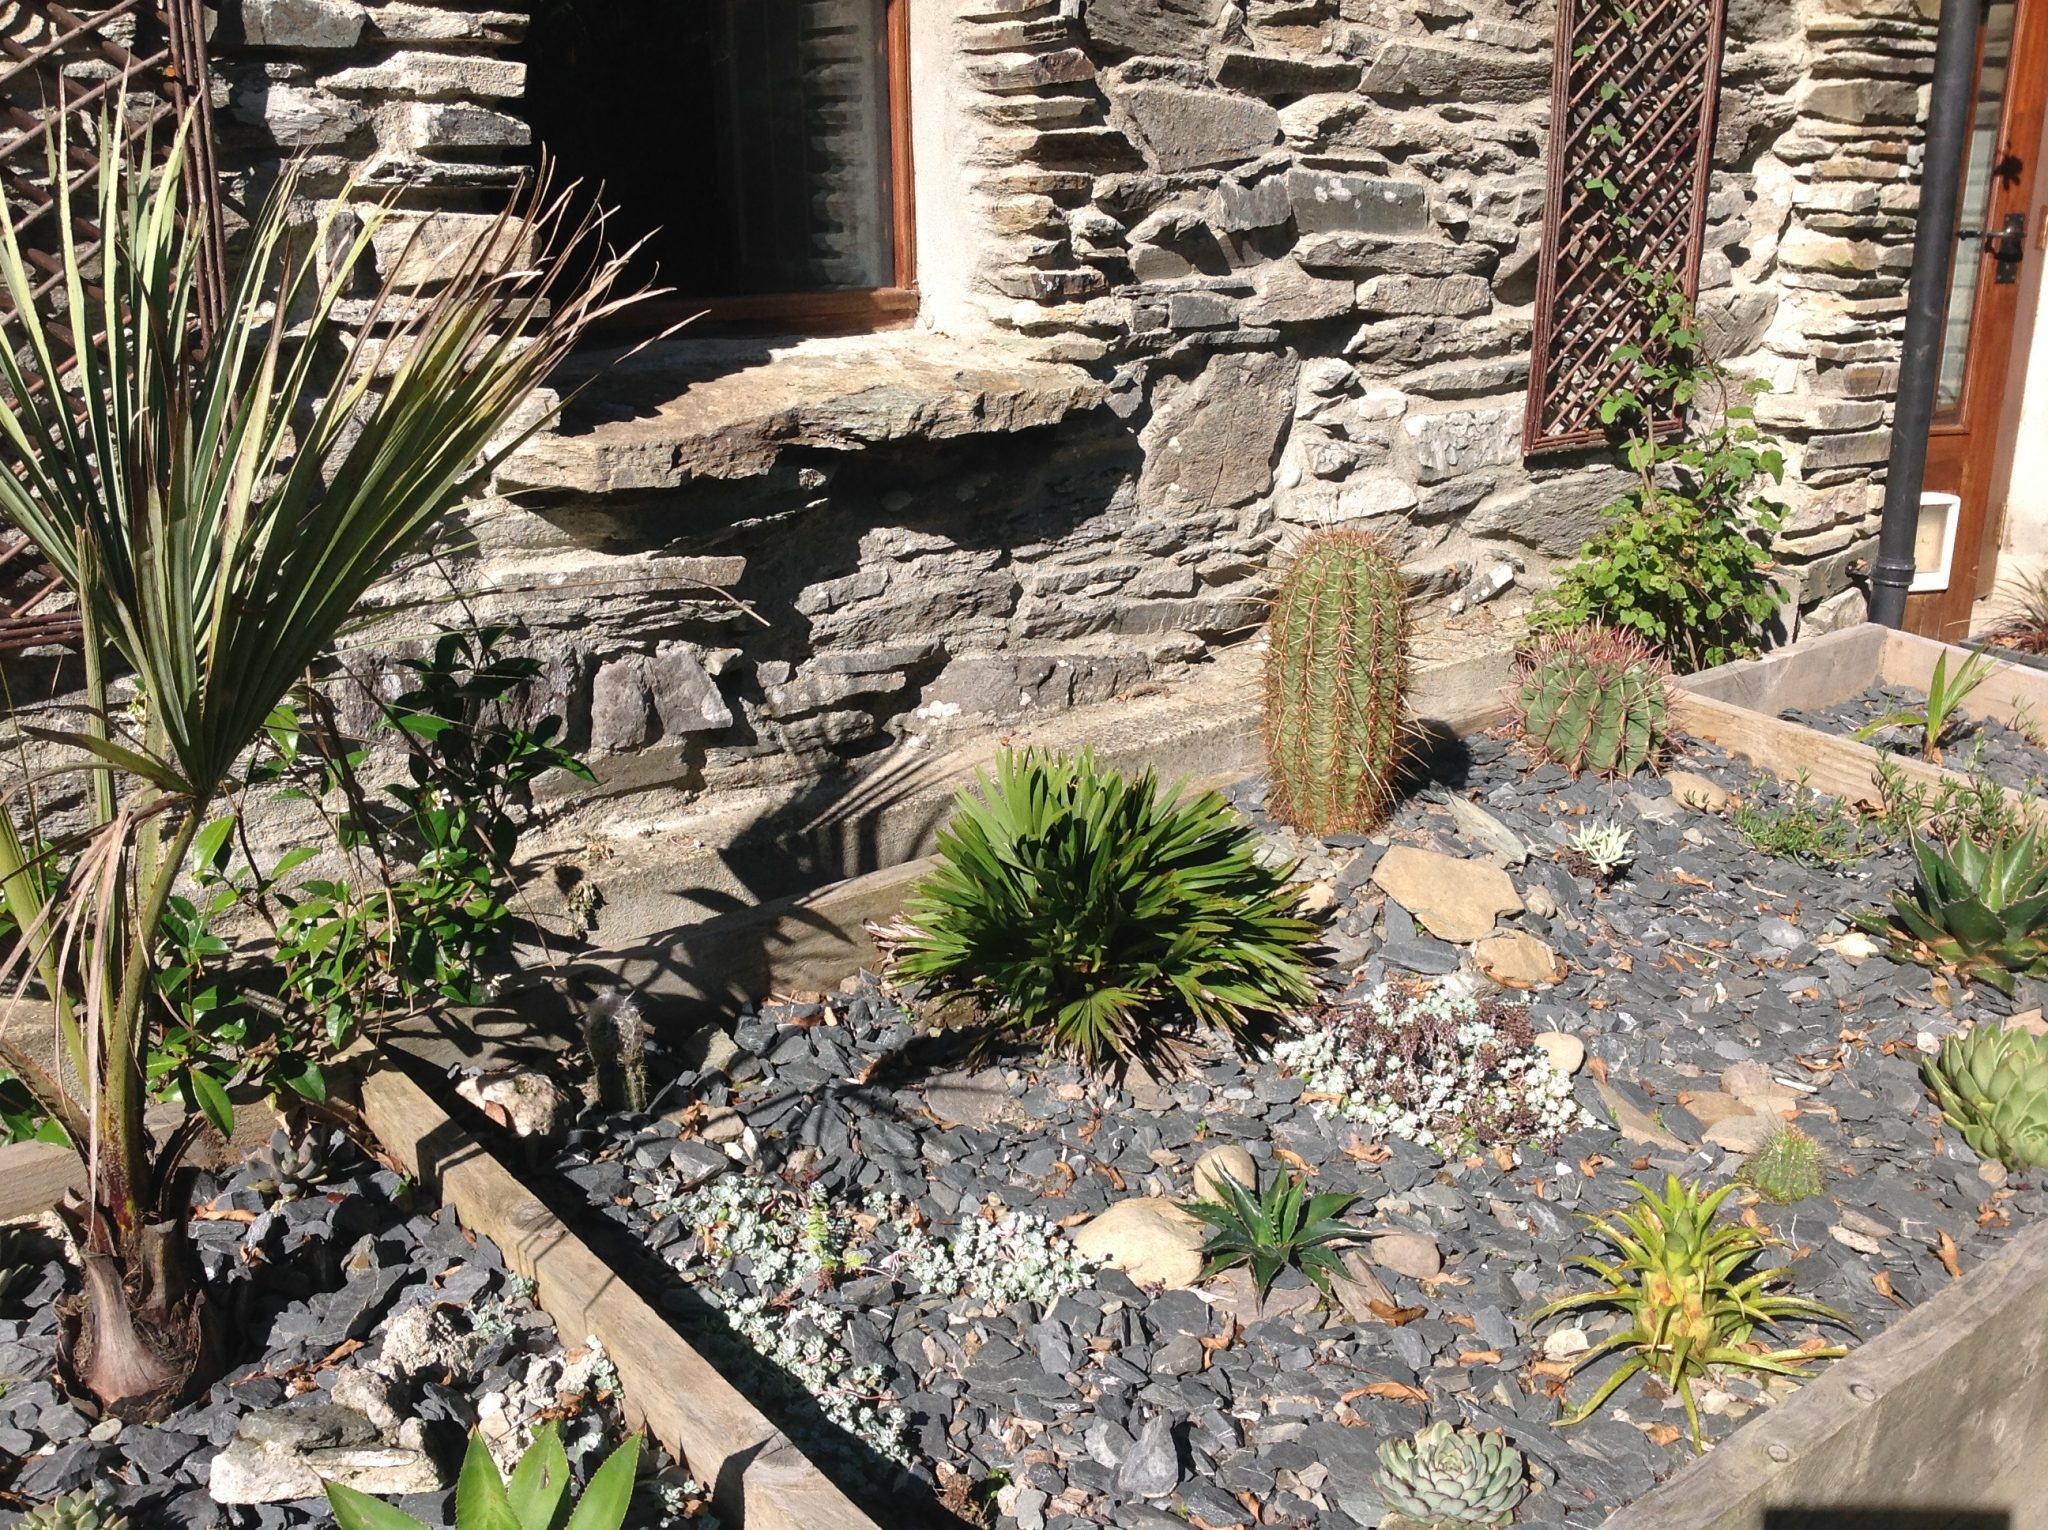 The Fernery main